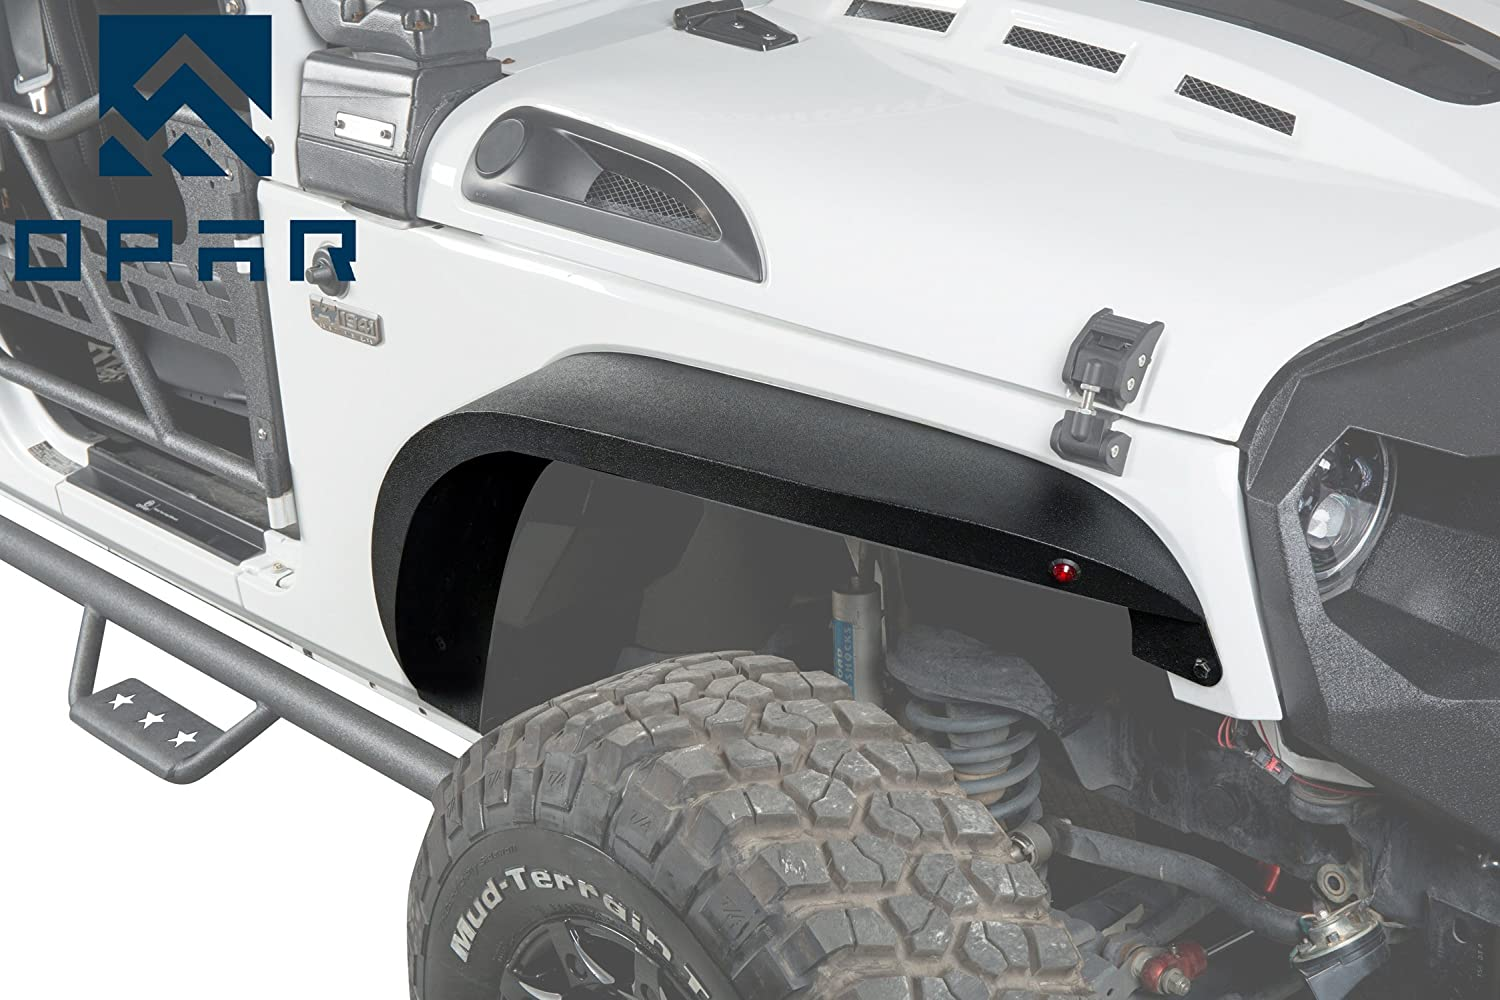 Jeep Fenders Reviews Of The Best Options To Choose From Installing Fender Flares If